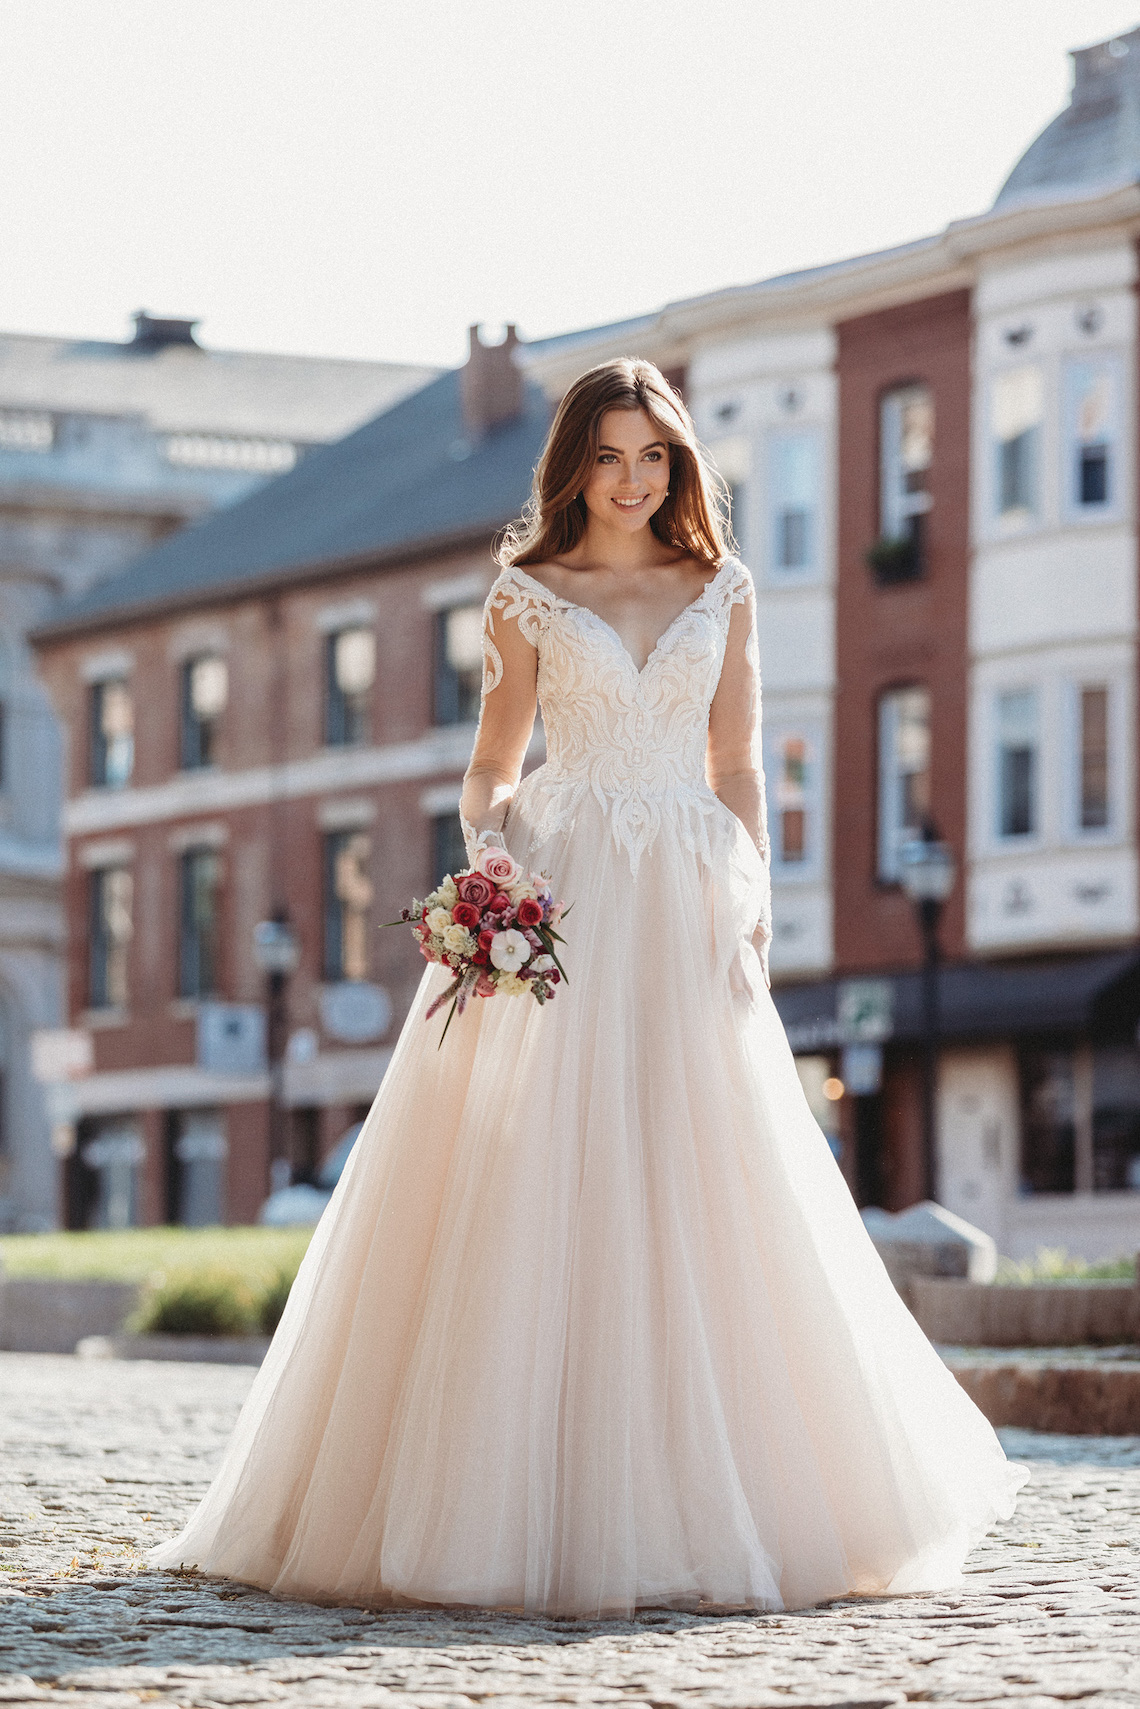 Top 10 Wedding Dress Shopping Tips From A Real Bridal Stylist – Allure Bridals 57